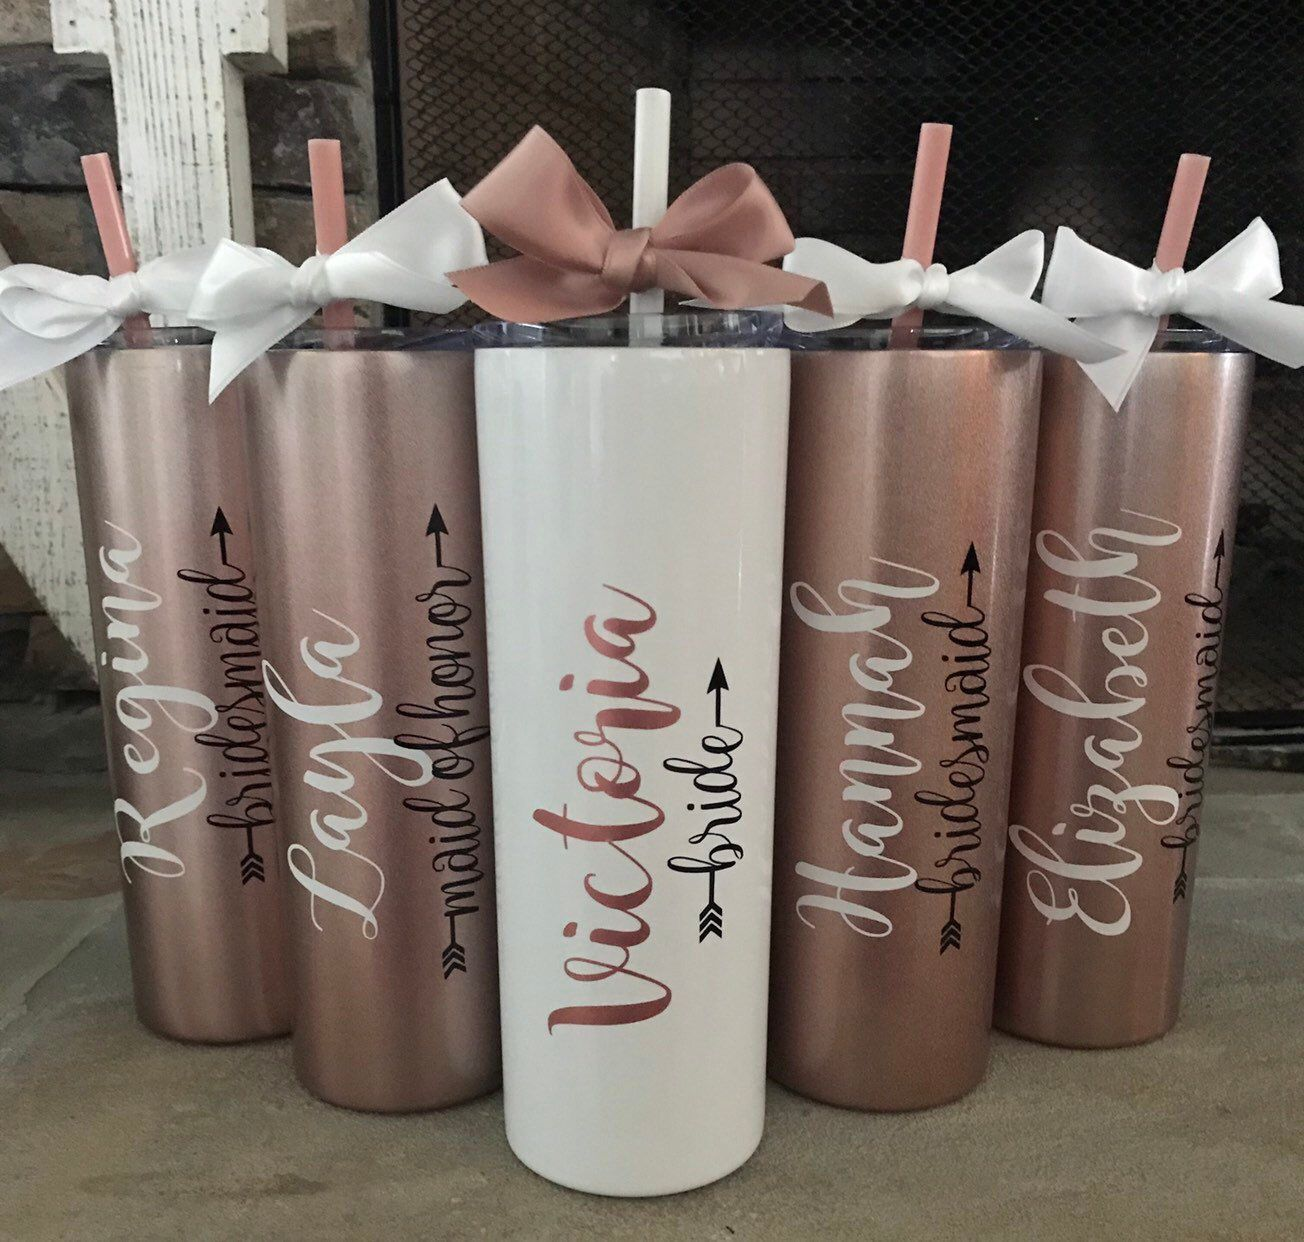 Excited to share this item from my #etsy shop: ROSE GOLD bridesmaid gift ideas, bridesmaids gifts on a budget,  bridesmaid proposal box, brides tribe gifts, maid of honor tumbler, gifts #weddings #rosegold #wedding #silver #bridesmaidgift #giftideas #bridesmaidsgifts #giftsonabudget #bridesmaidproposal #rose gold Wedding ROSE GOLD bridesmaid gift ideas, bridesmaids gifts on a budget, bridesmaid proposal box, brides tribe gifts, maid of honor tumbler, gifts #partybudgeting